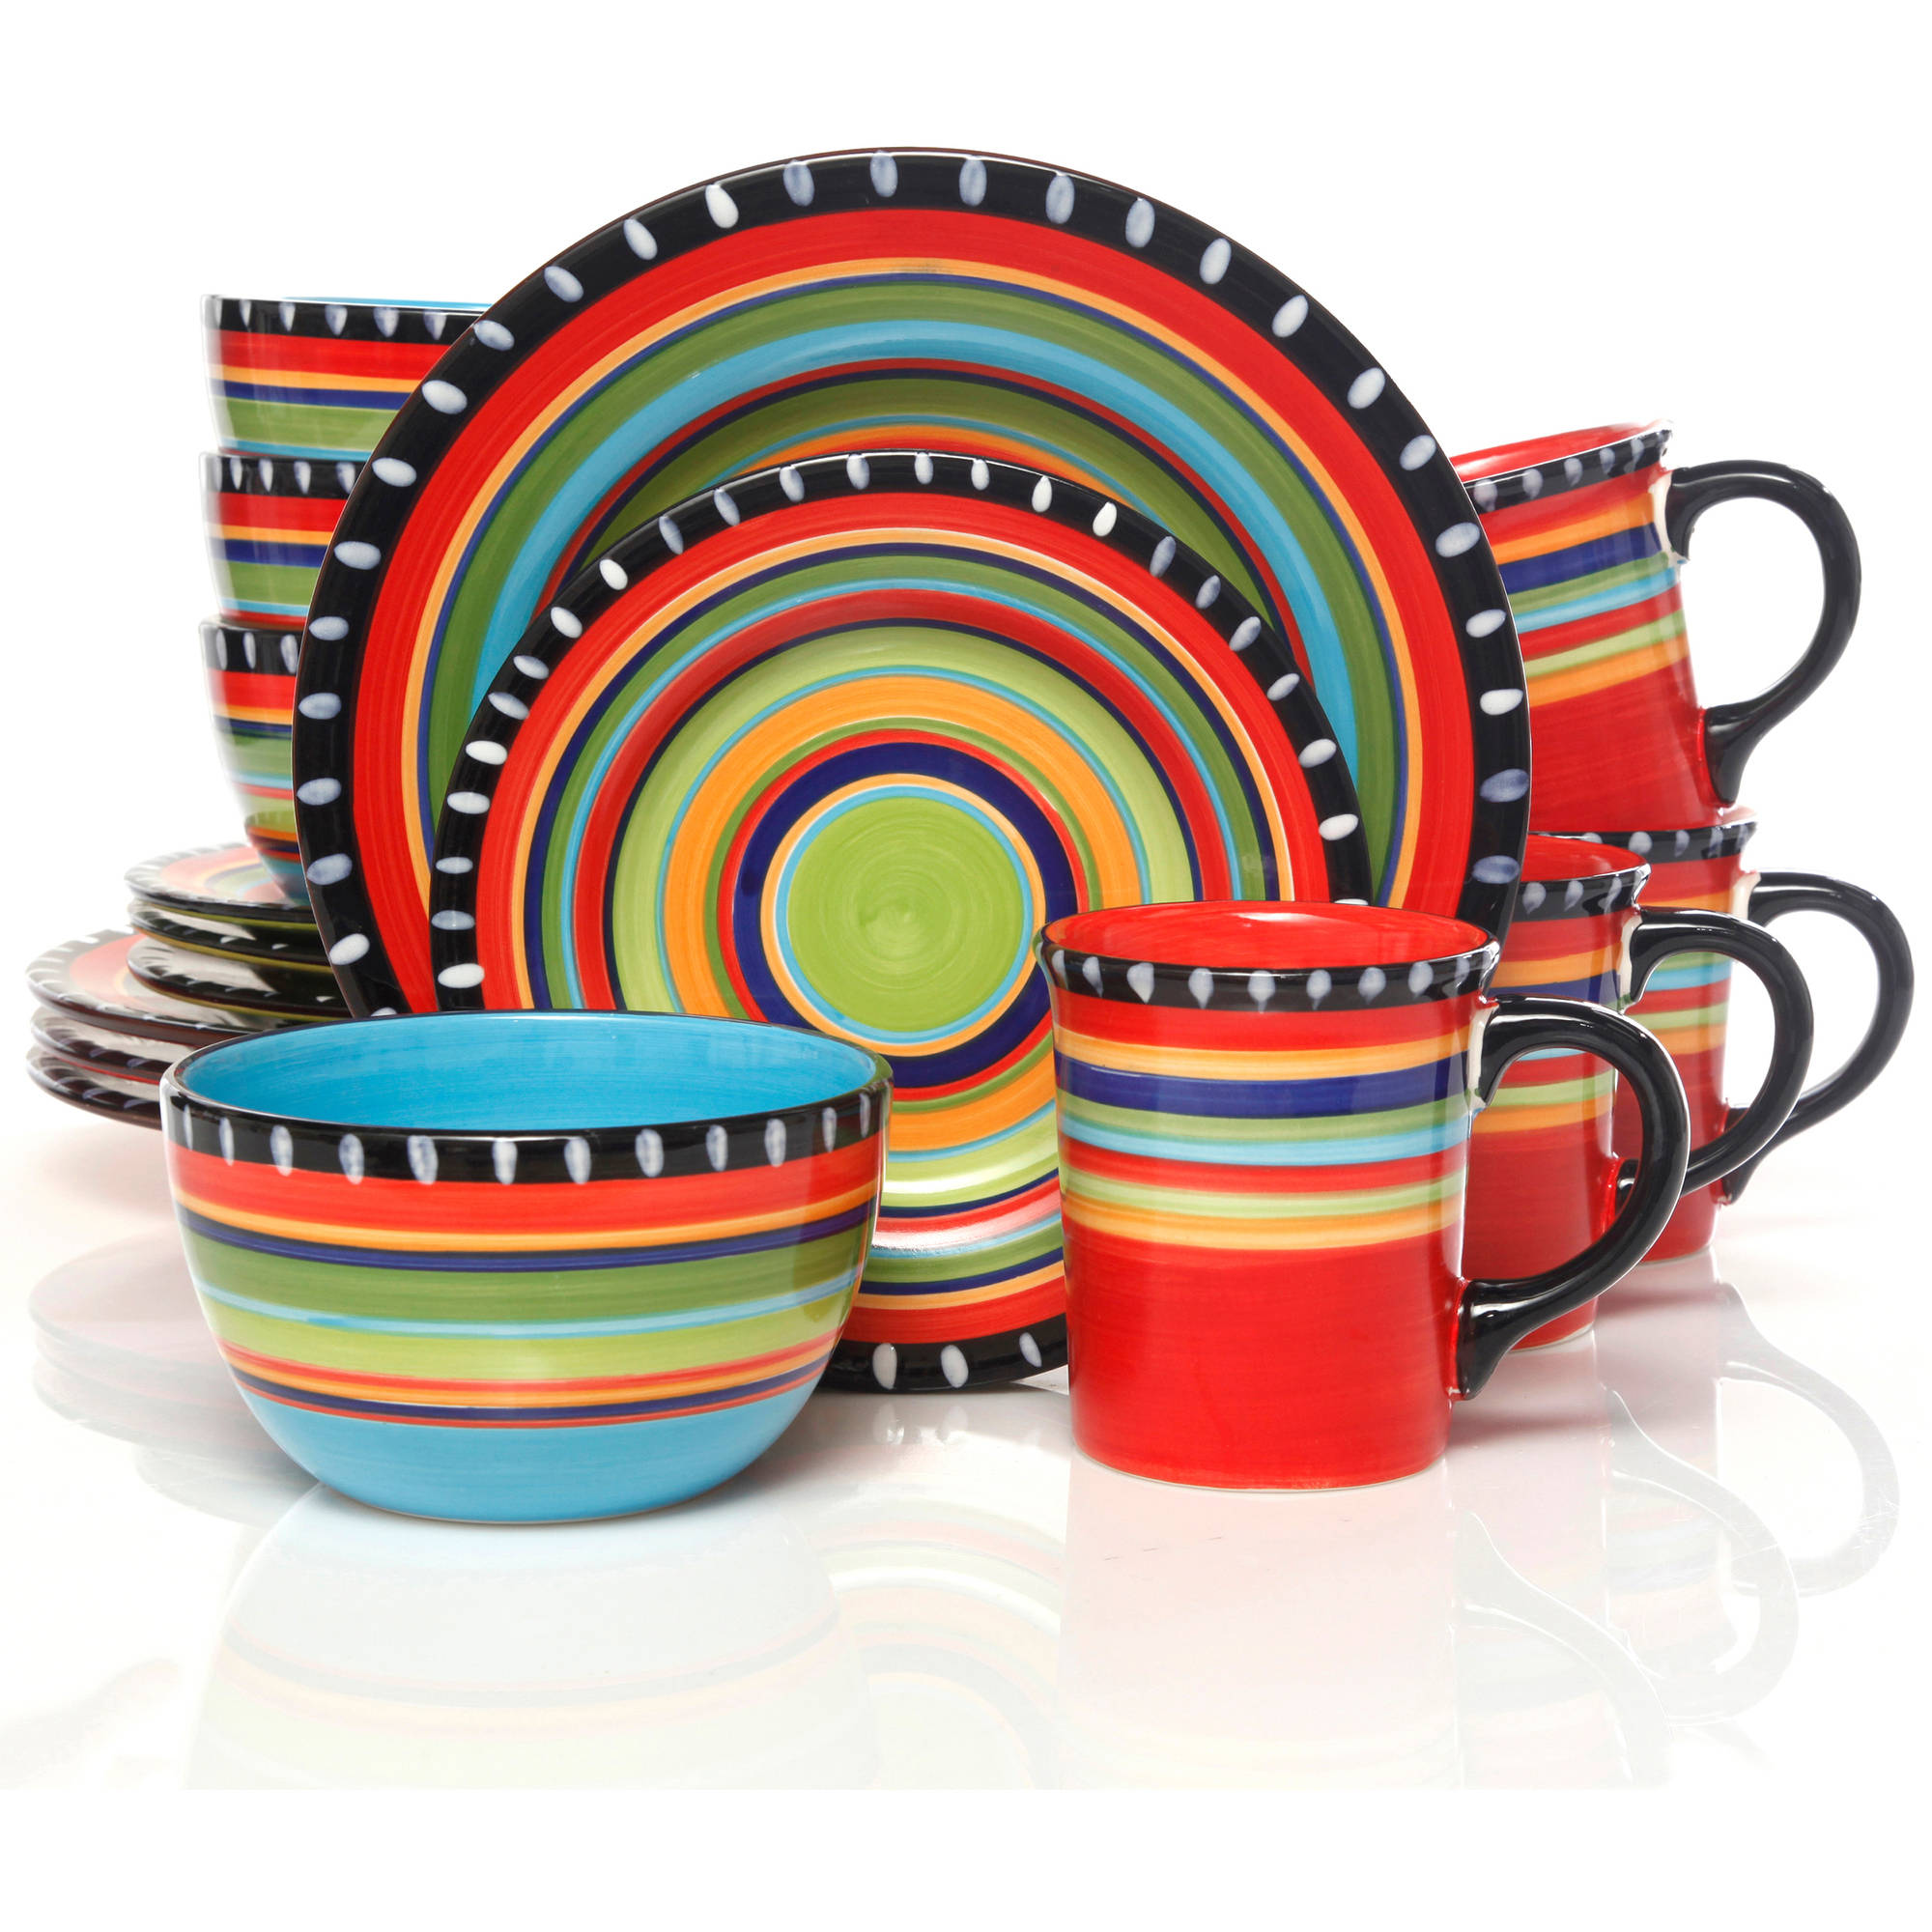 Gibson Home Pueblo Springs Handpainted 16 Piece Dinnerware Set, Multi Color    Walmart.com